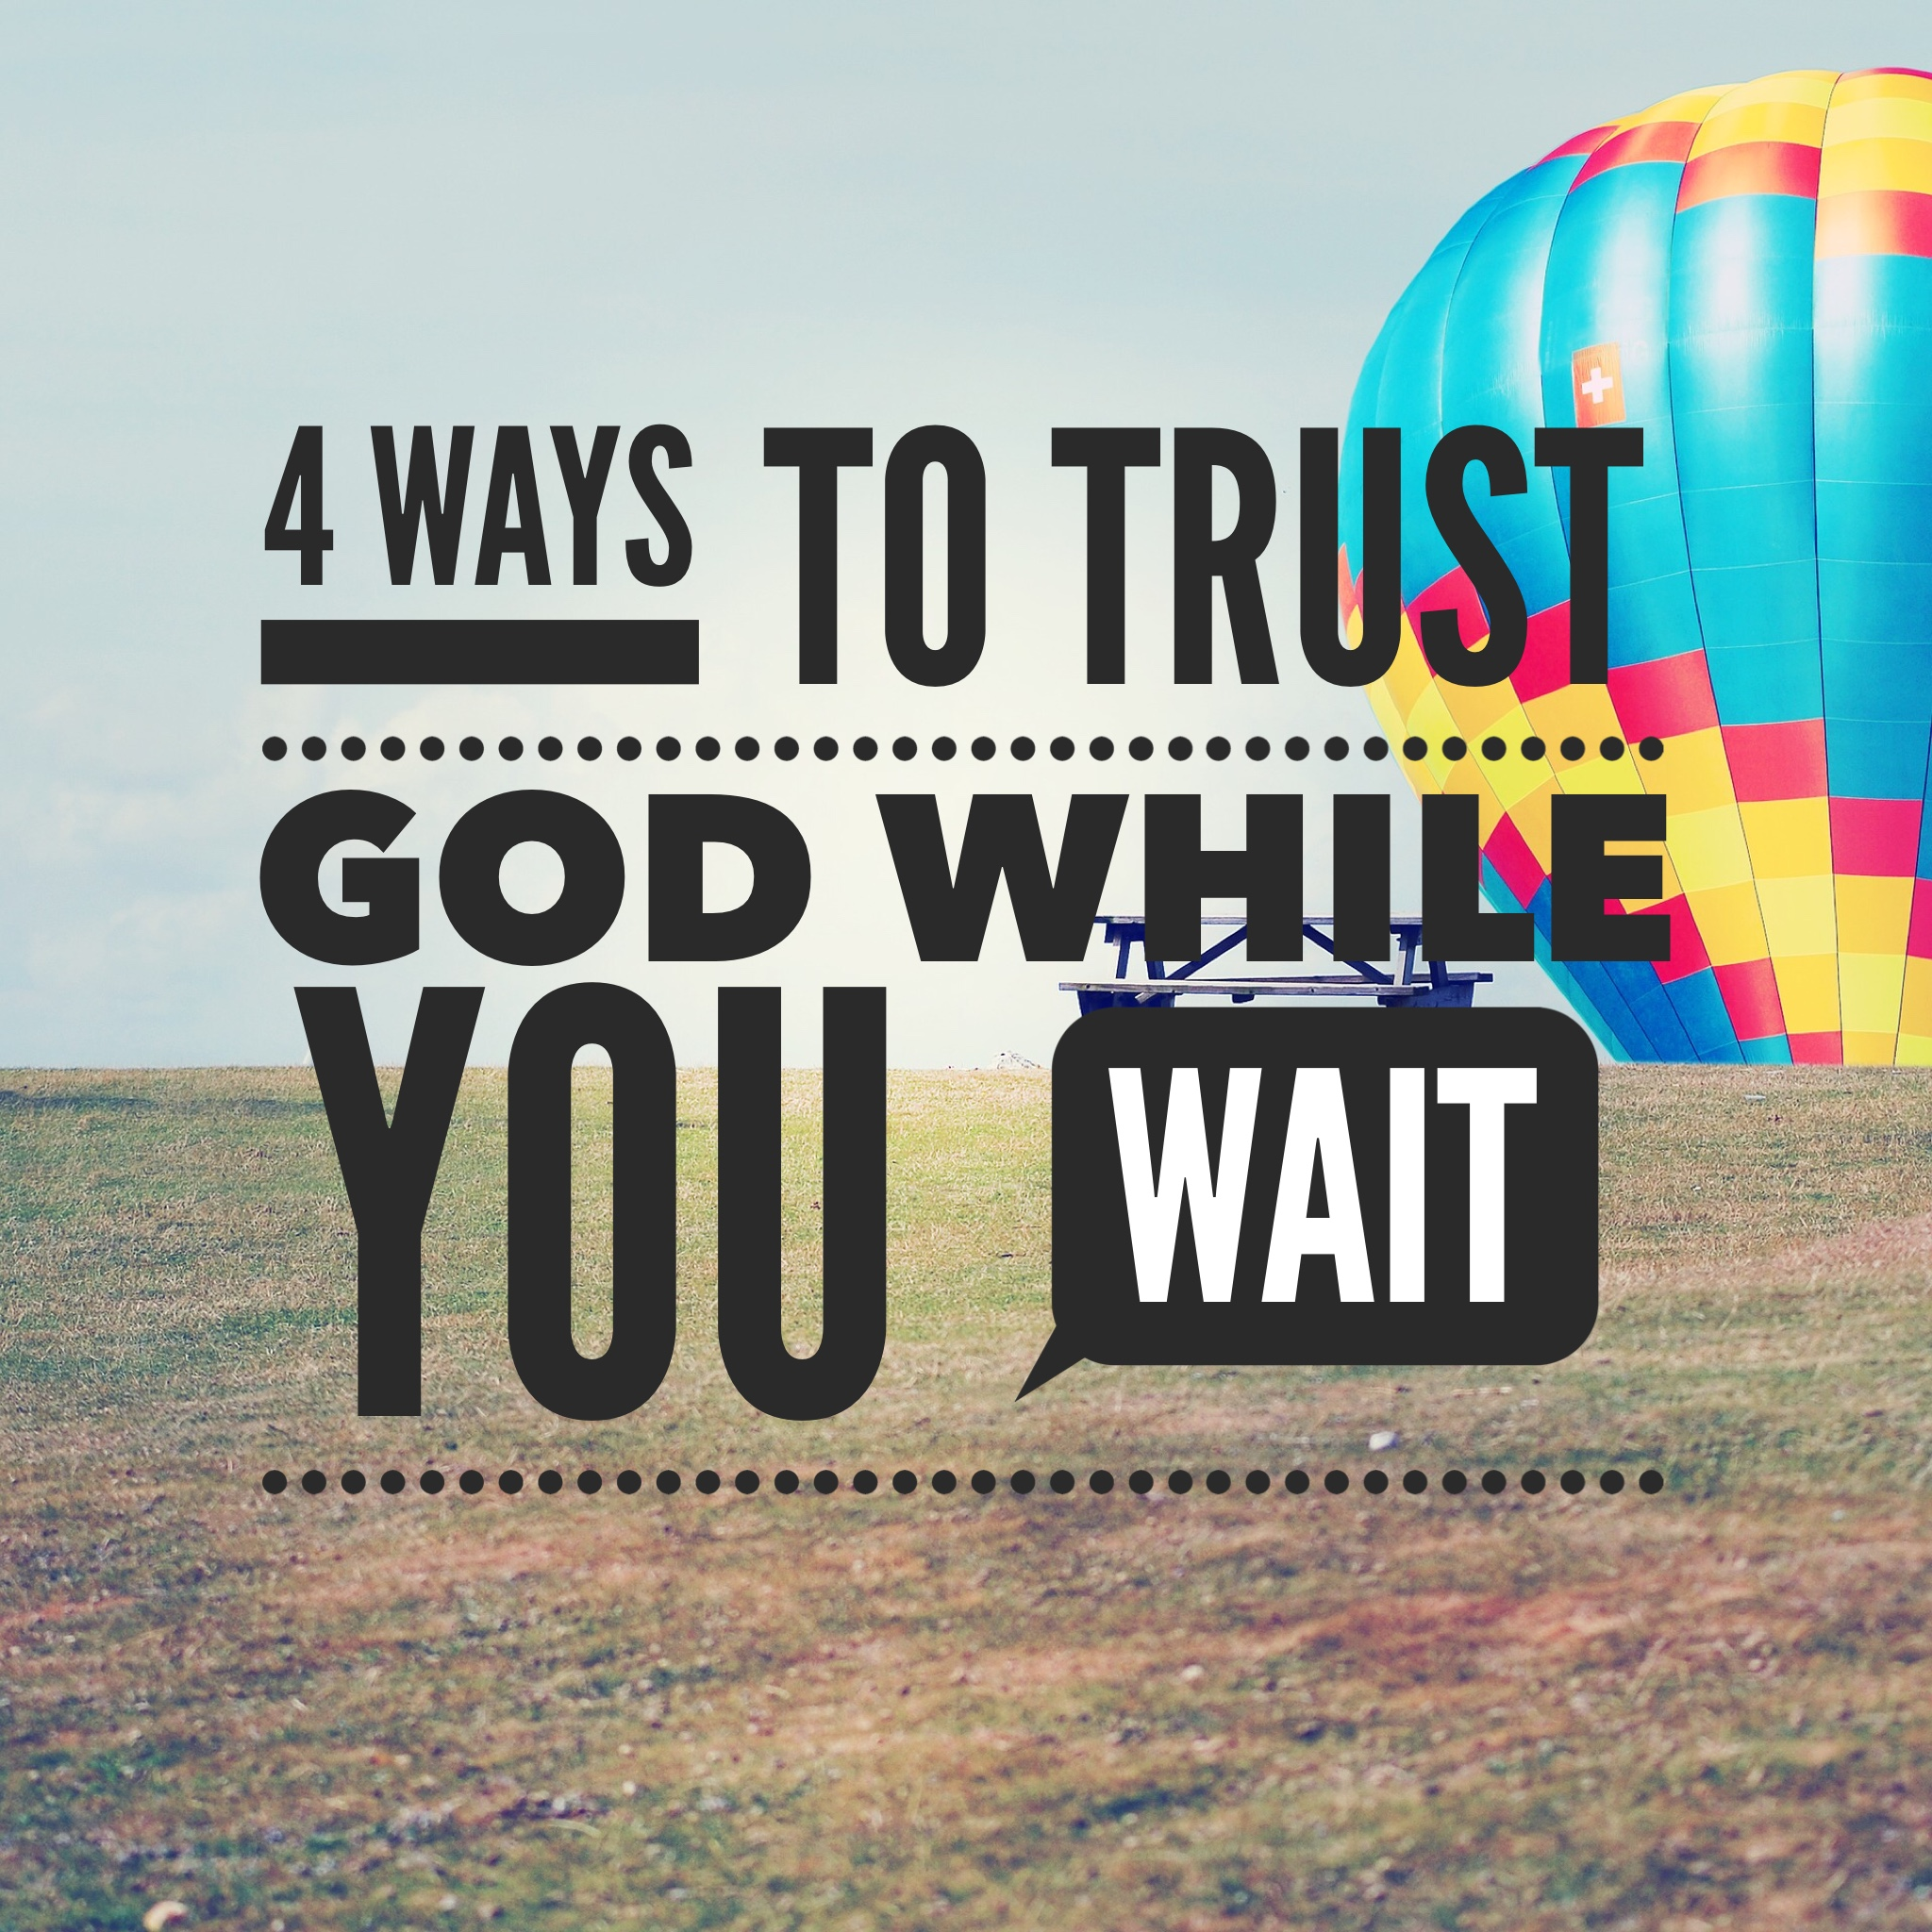 4 Ways To Trust God While You Wait